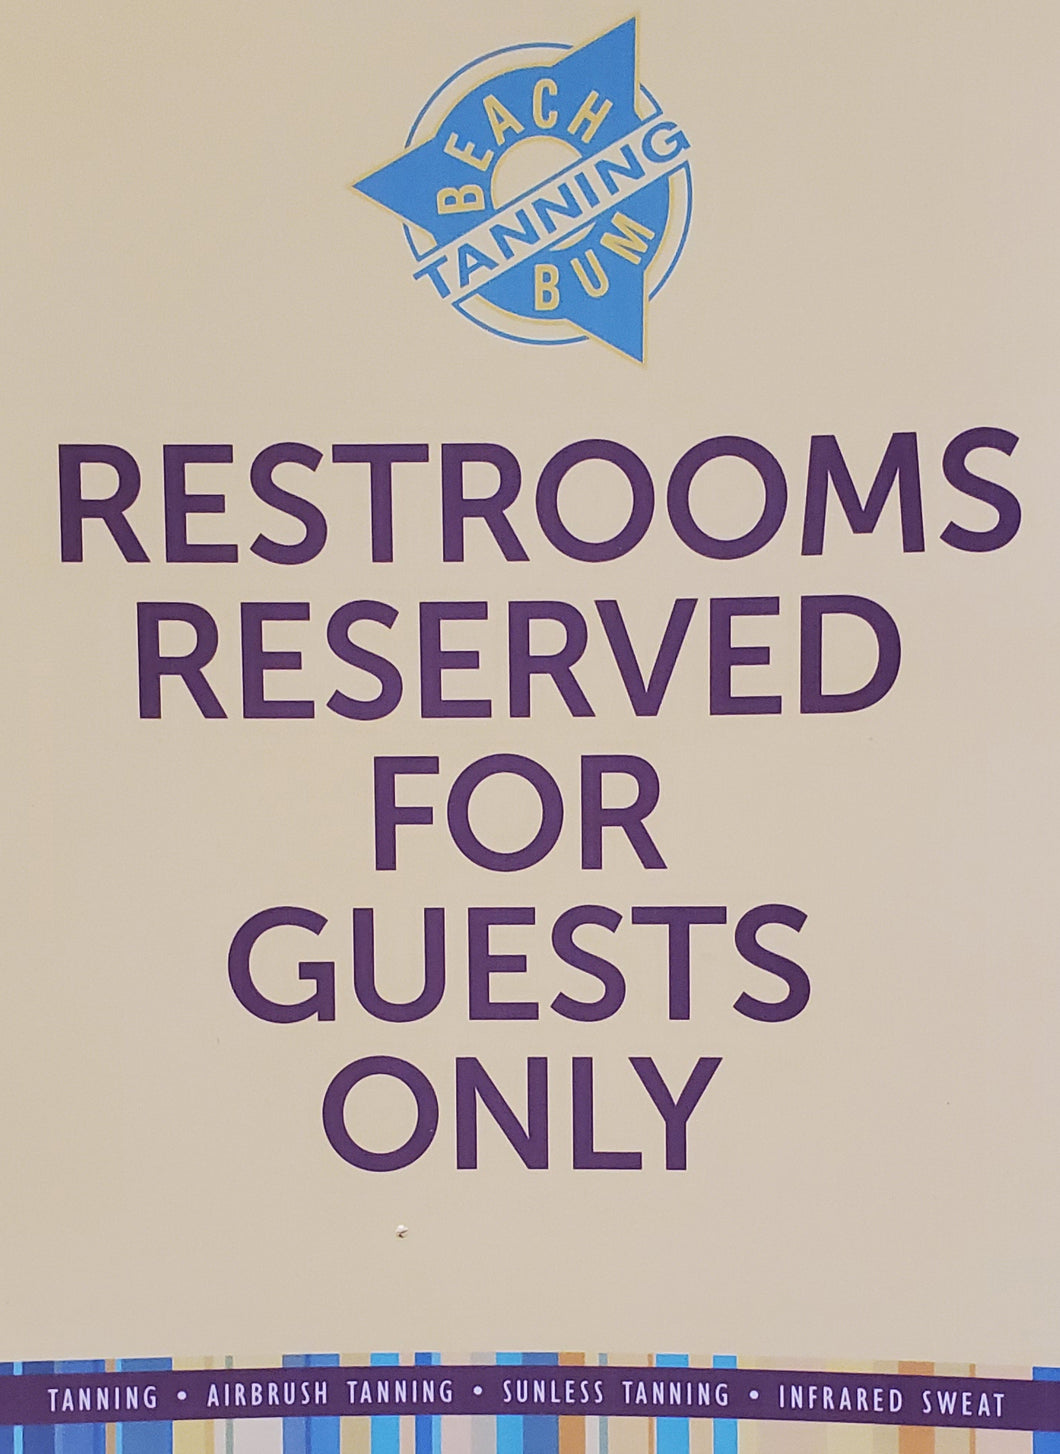 Restrooms Reserved for Guests